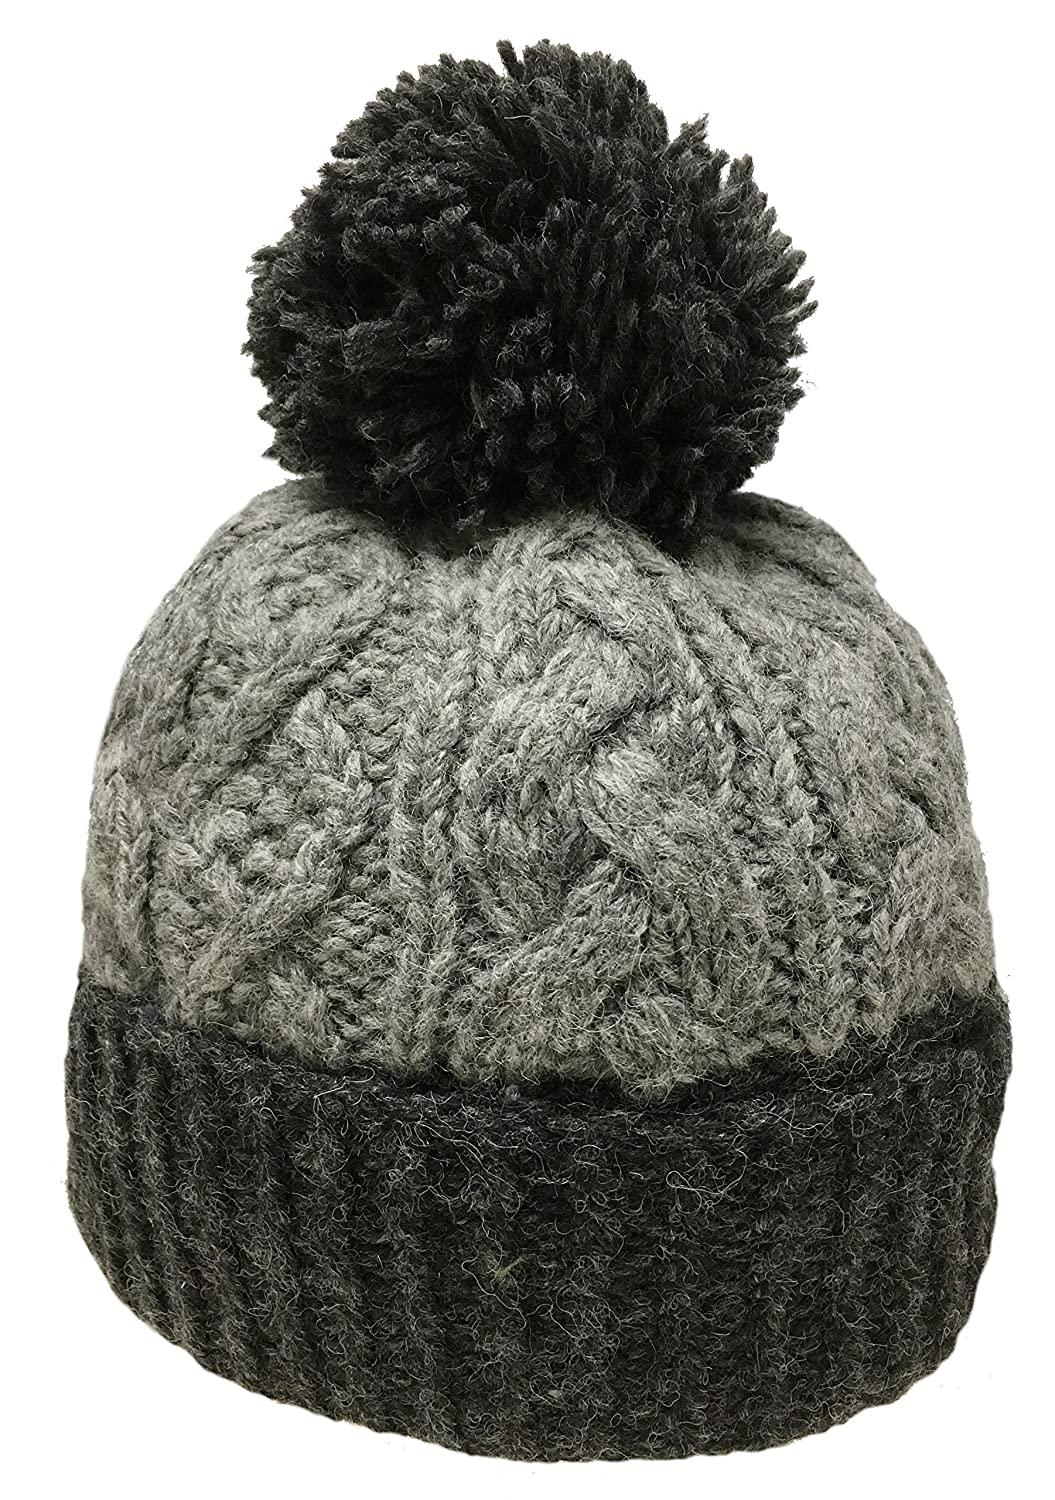 Nepal Hand Knit Sherpa Hat with Ear Flaps cd683e3aea89